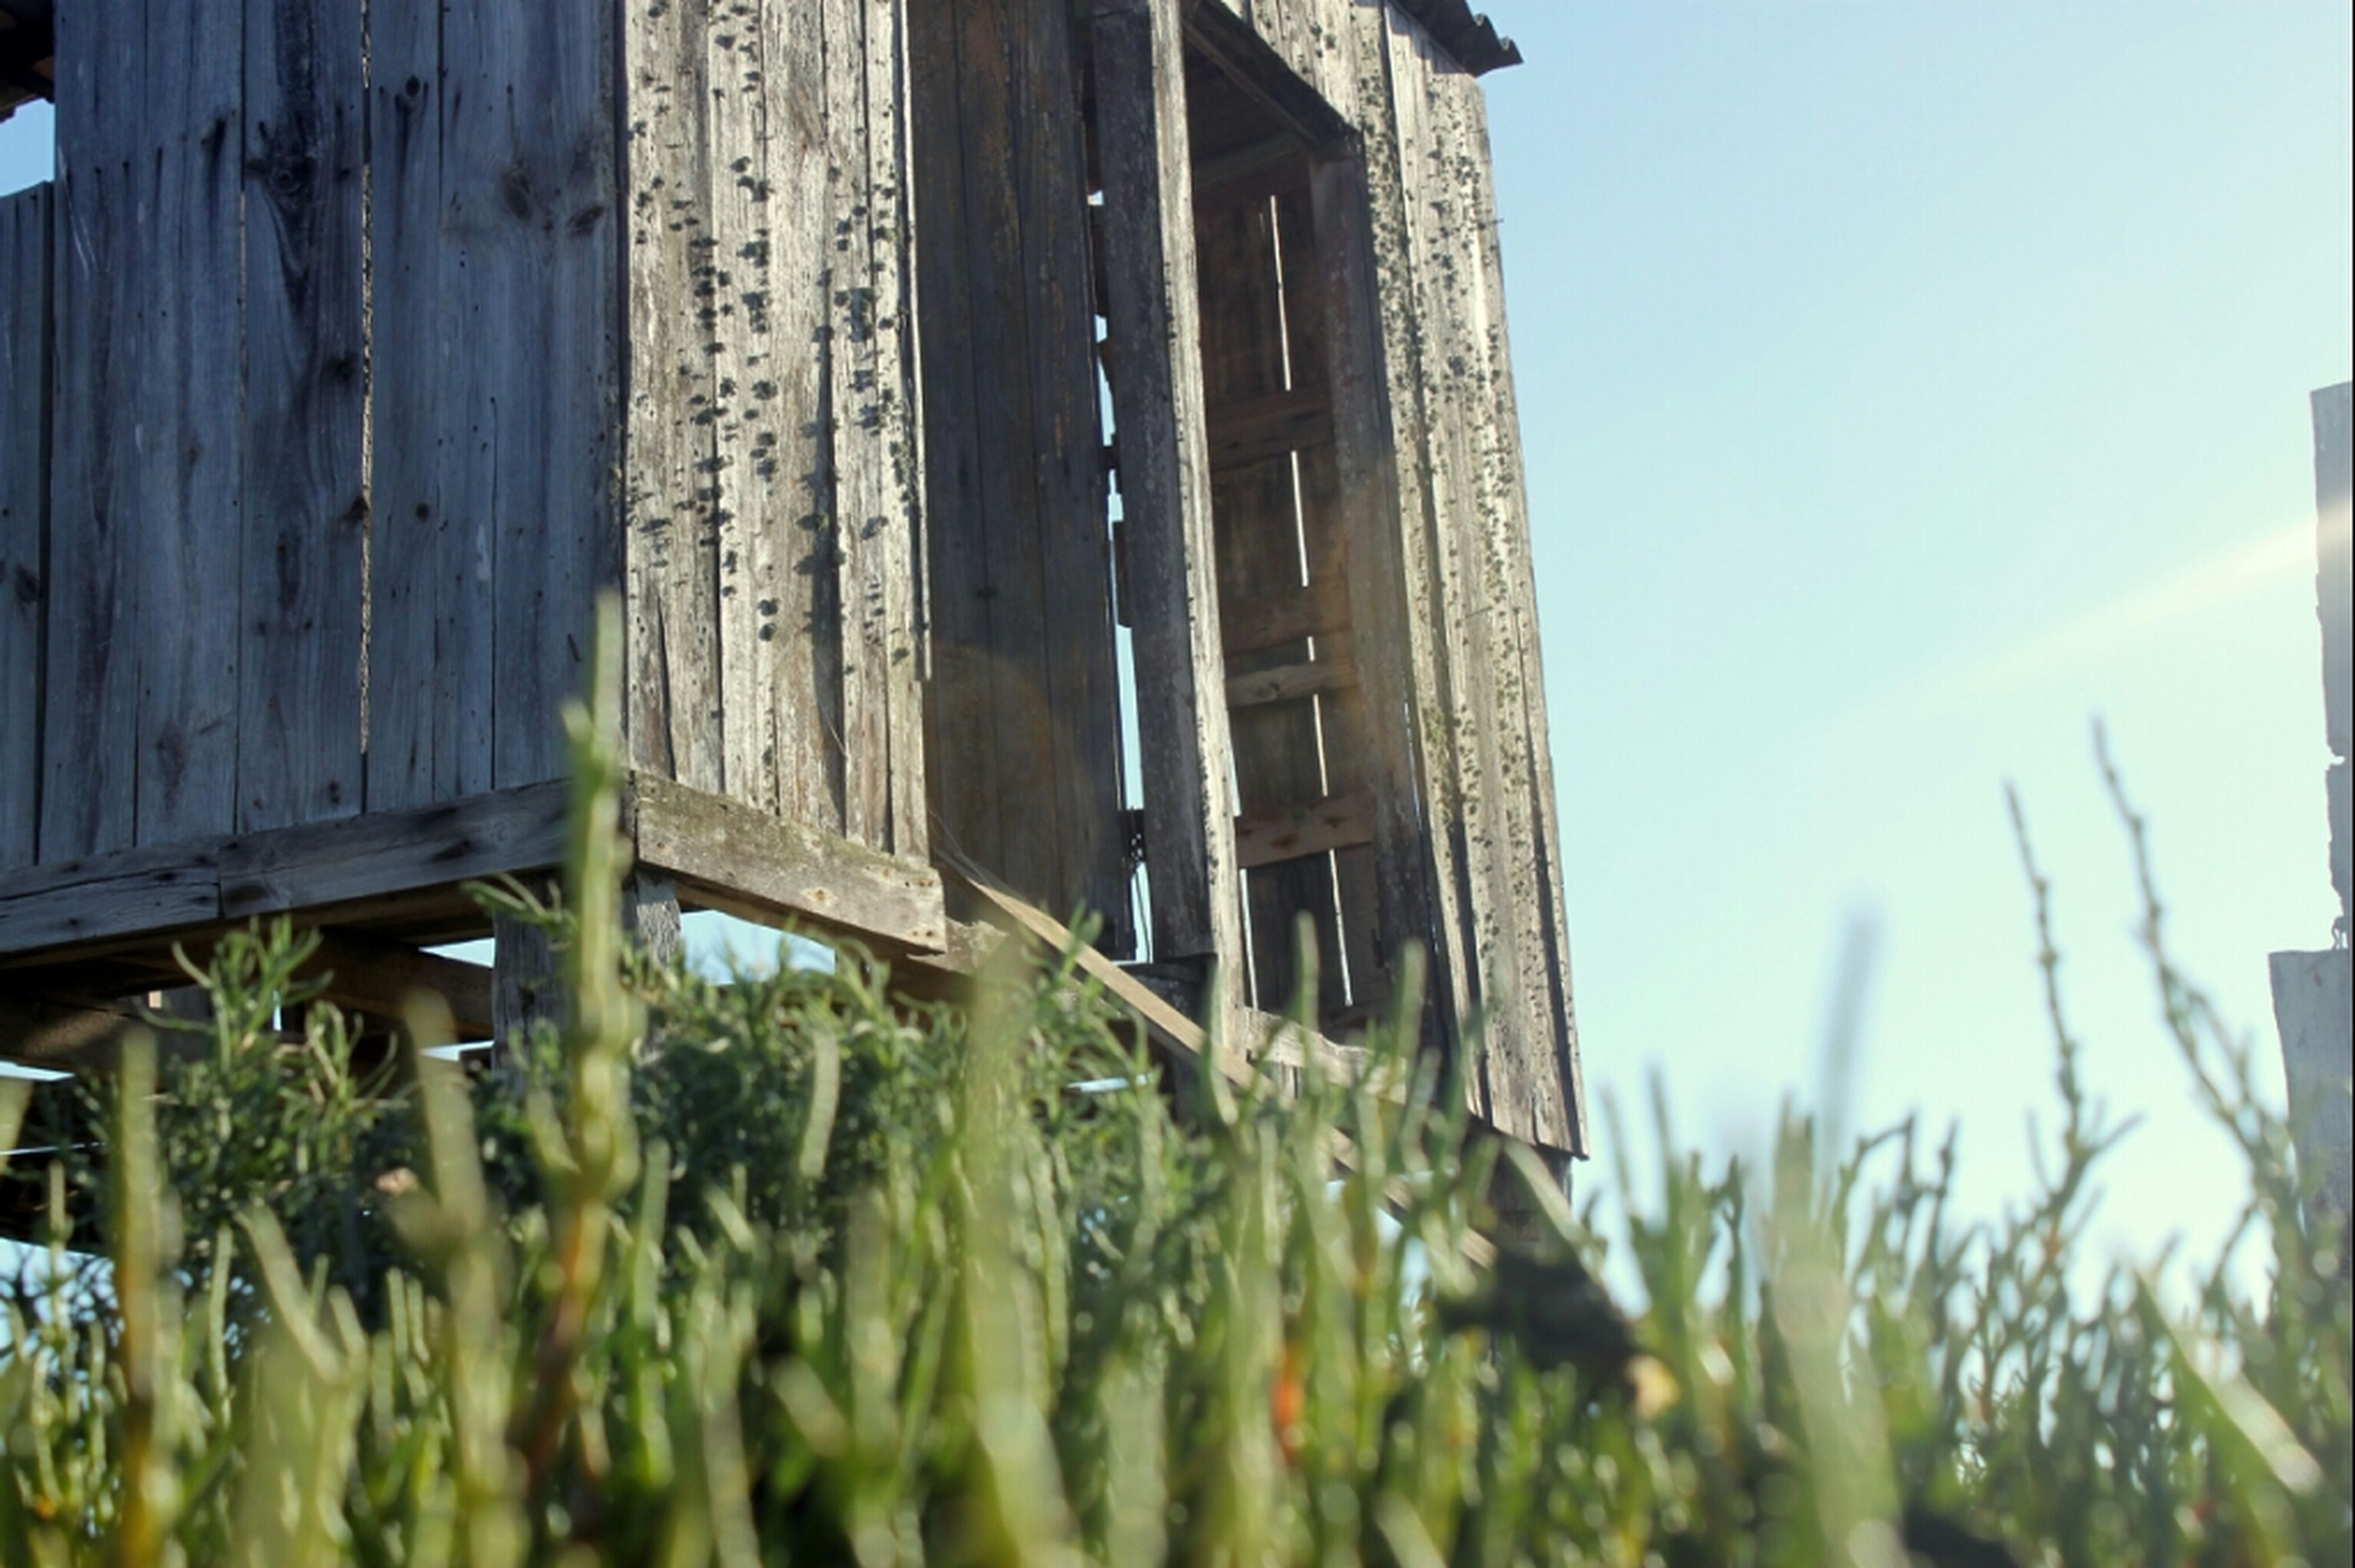 architecture, built structure, building exterior, grass, sky, field, house, plant, wood - material, growth, day, clear sky, abandoned, no people, outdoors, sunlight, low angle view, selective focus, nature, wooden